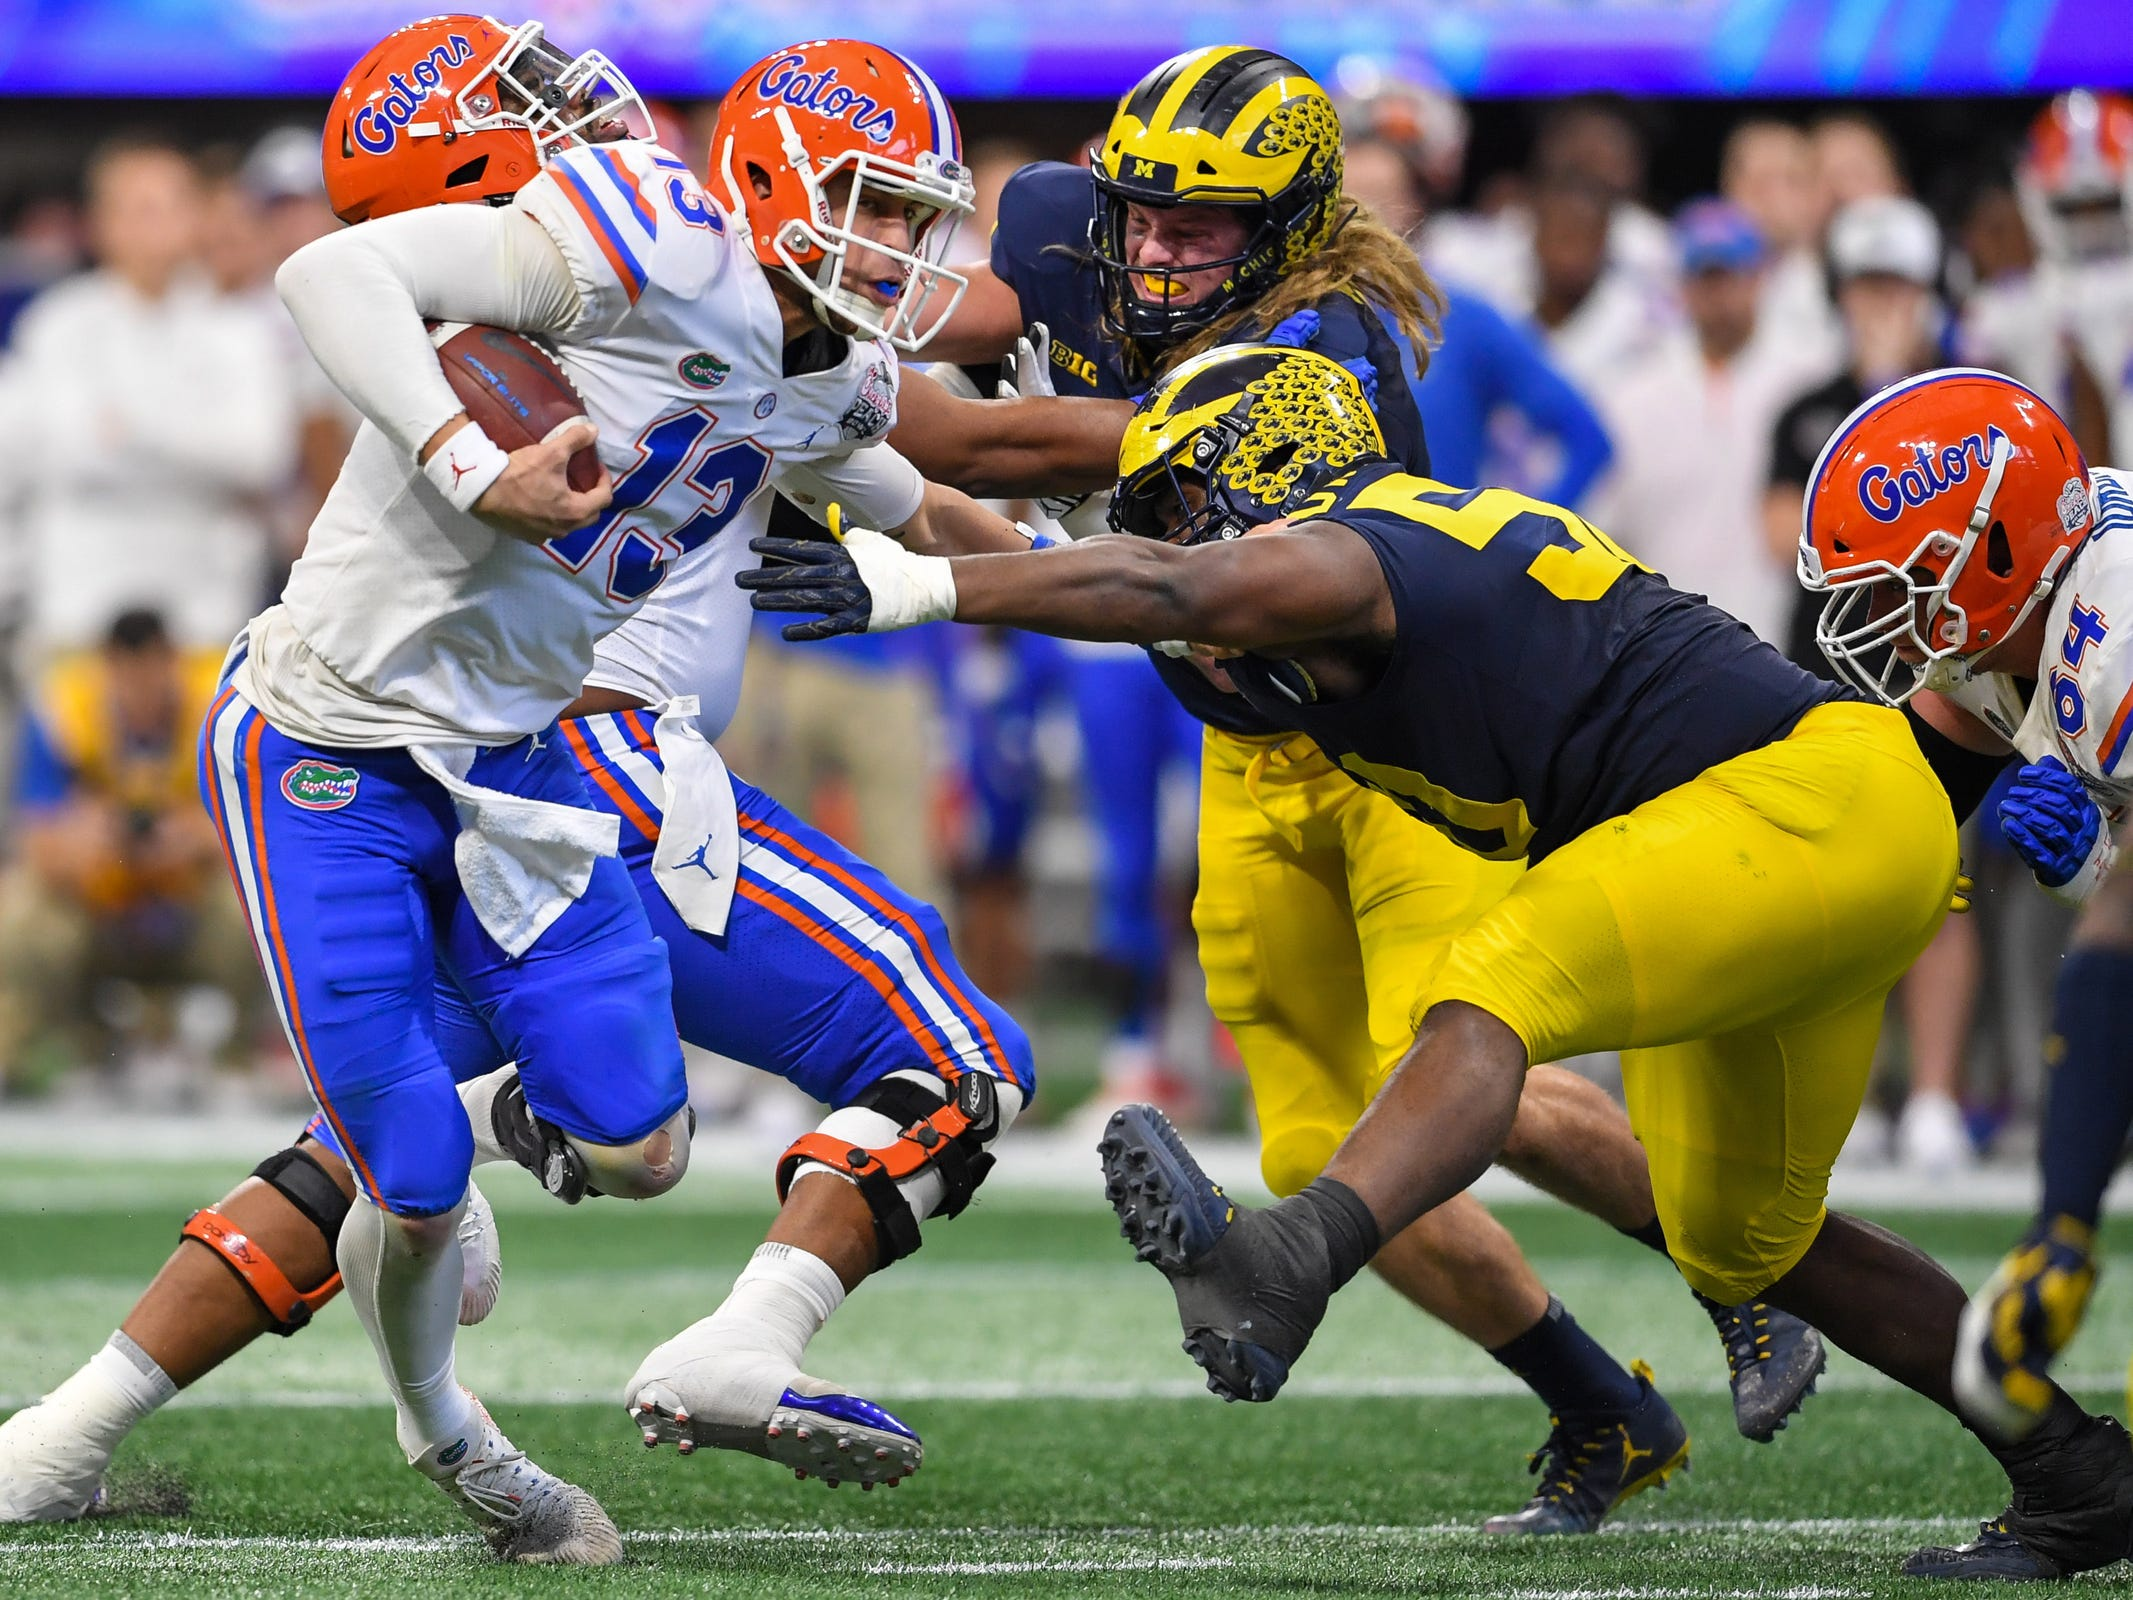 Florida quarterback Feleipe Franks runs against Michigan defensive lineman Michael Dwumfour during the first half of the Peach Bowl on Saturday, Dec. 29, 2018, in Atlanta.